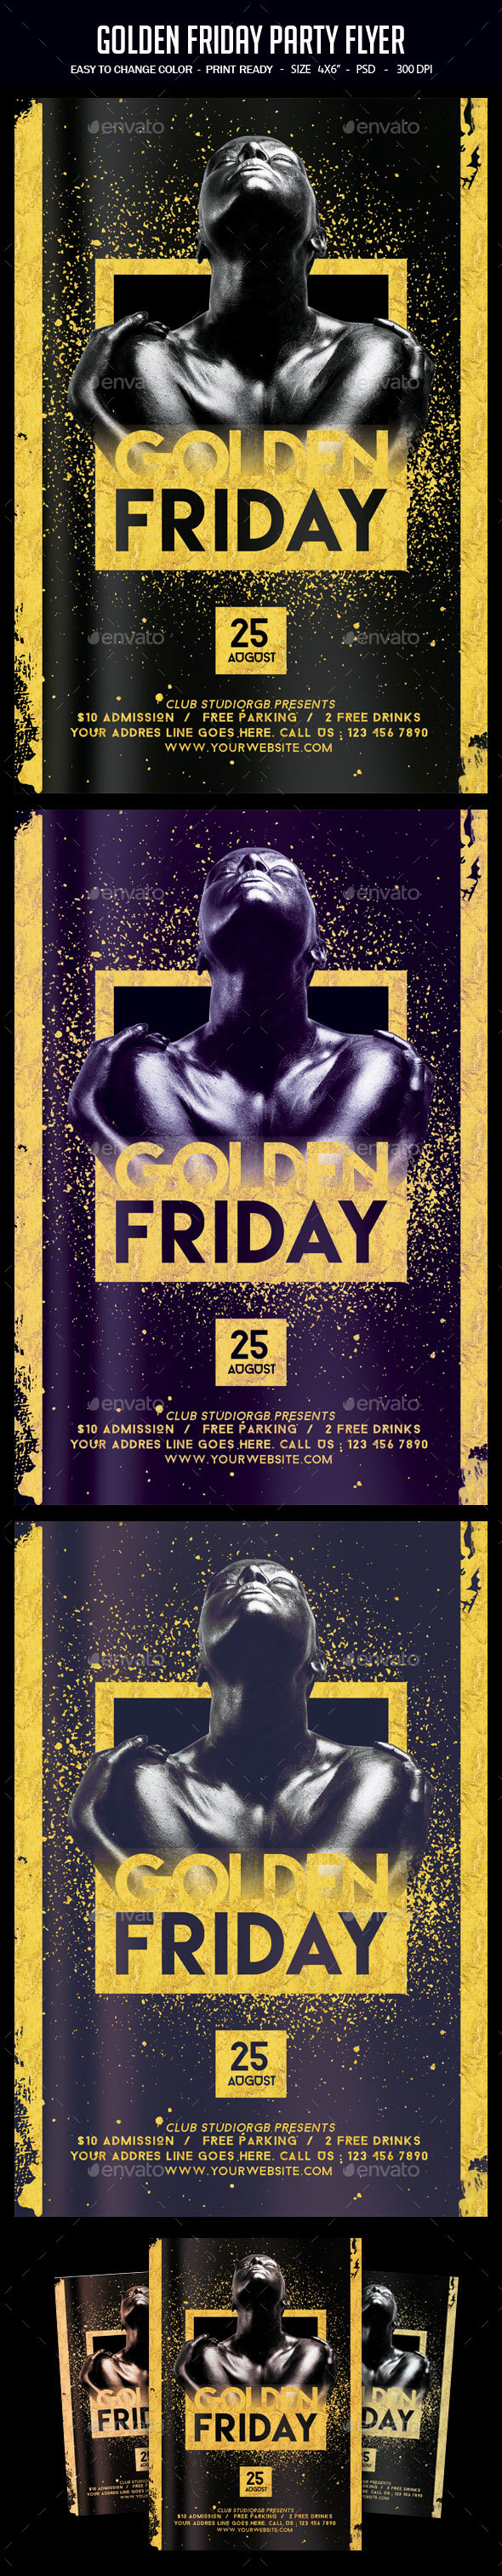 Golden Friday Party Flyer - Clubs & Parties Events